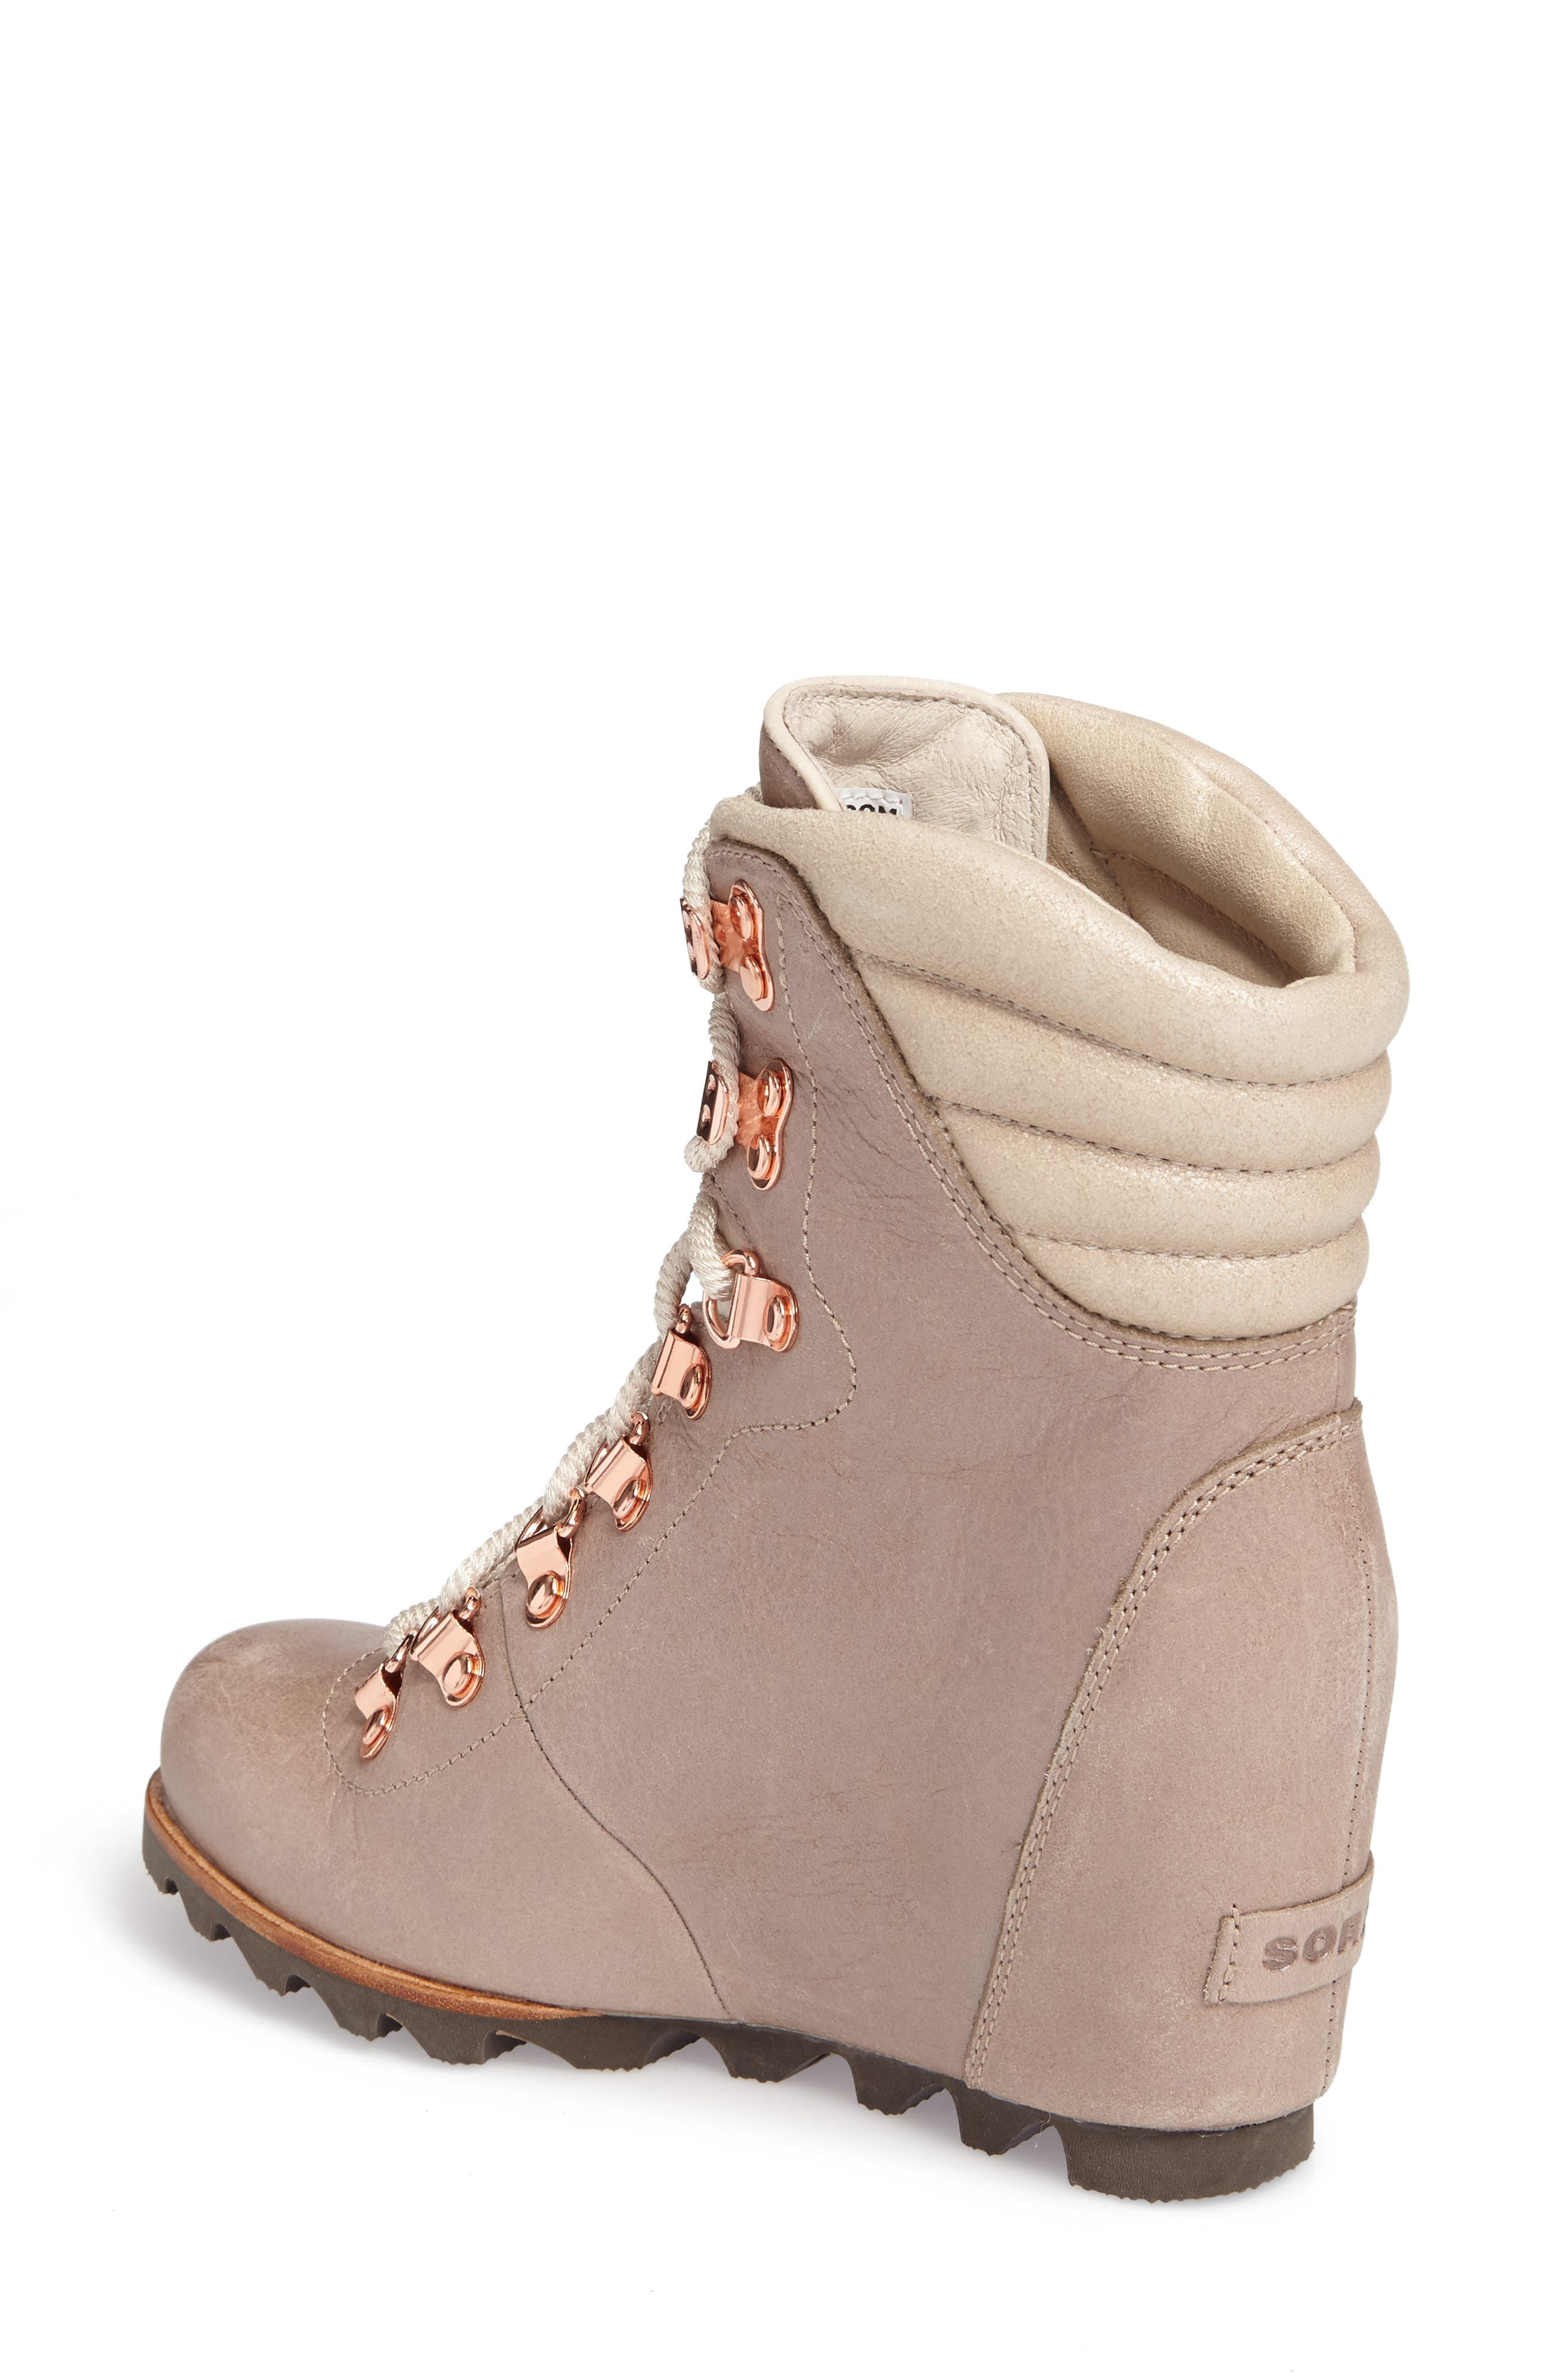 'Conquest' Waterproof Wedge Boot,                             Alternate thumbnail 10, color,